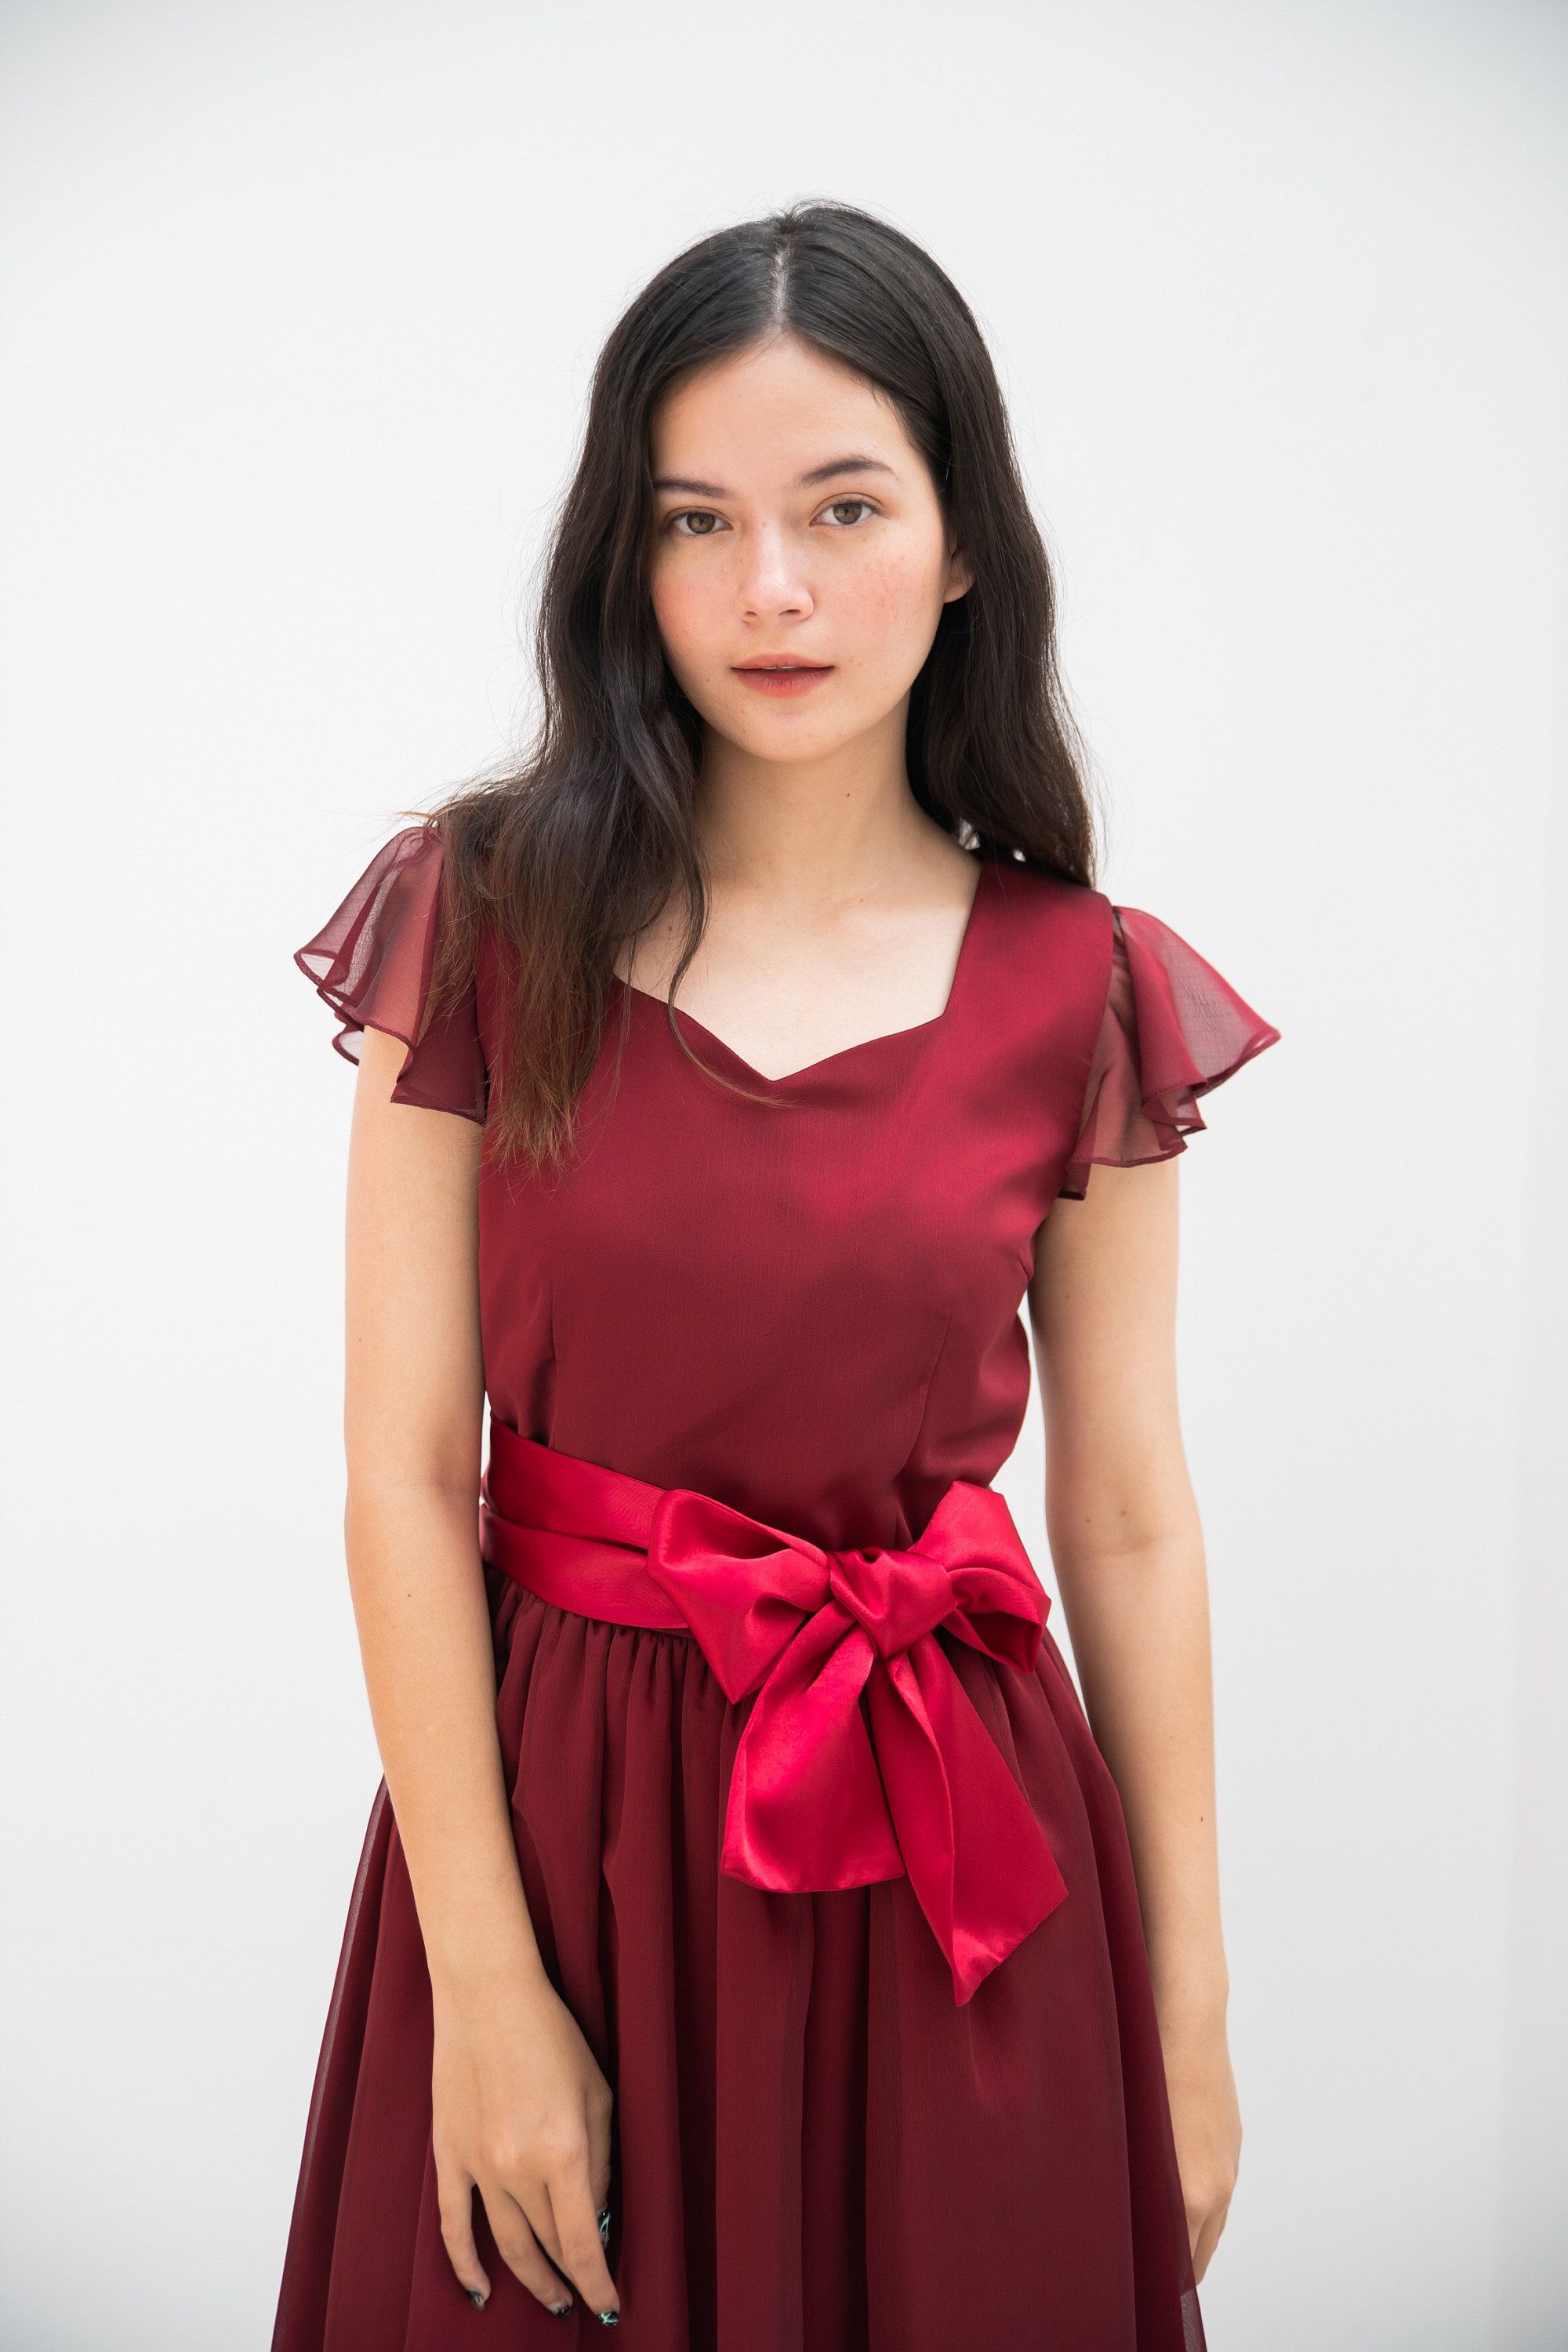 Sweetheart Red Vintage Party Dress Ruffle Sleeve Bridesmaid Silk Chiffon Dress Long Chinese Wedding Gown Fairy Look Hollywood Style 2020 [ 3000 x 2000 Pixel ]